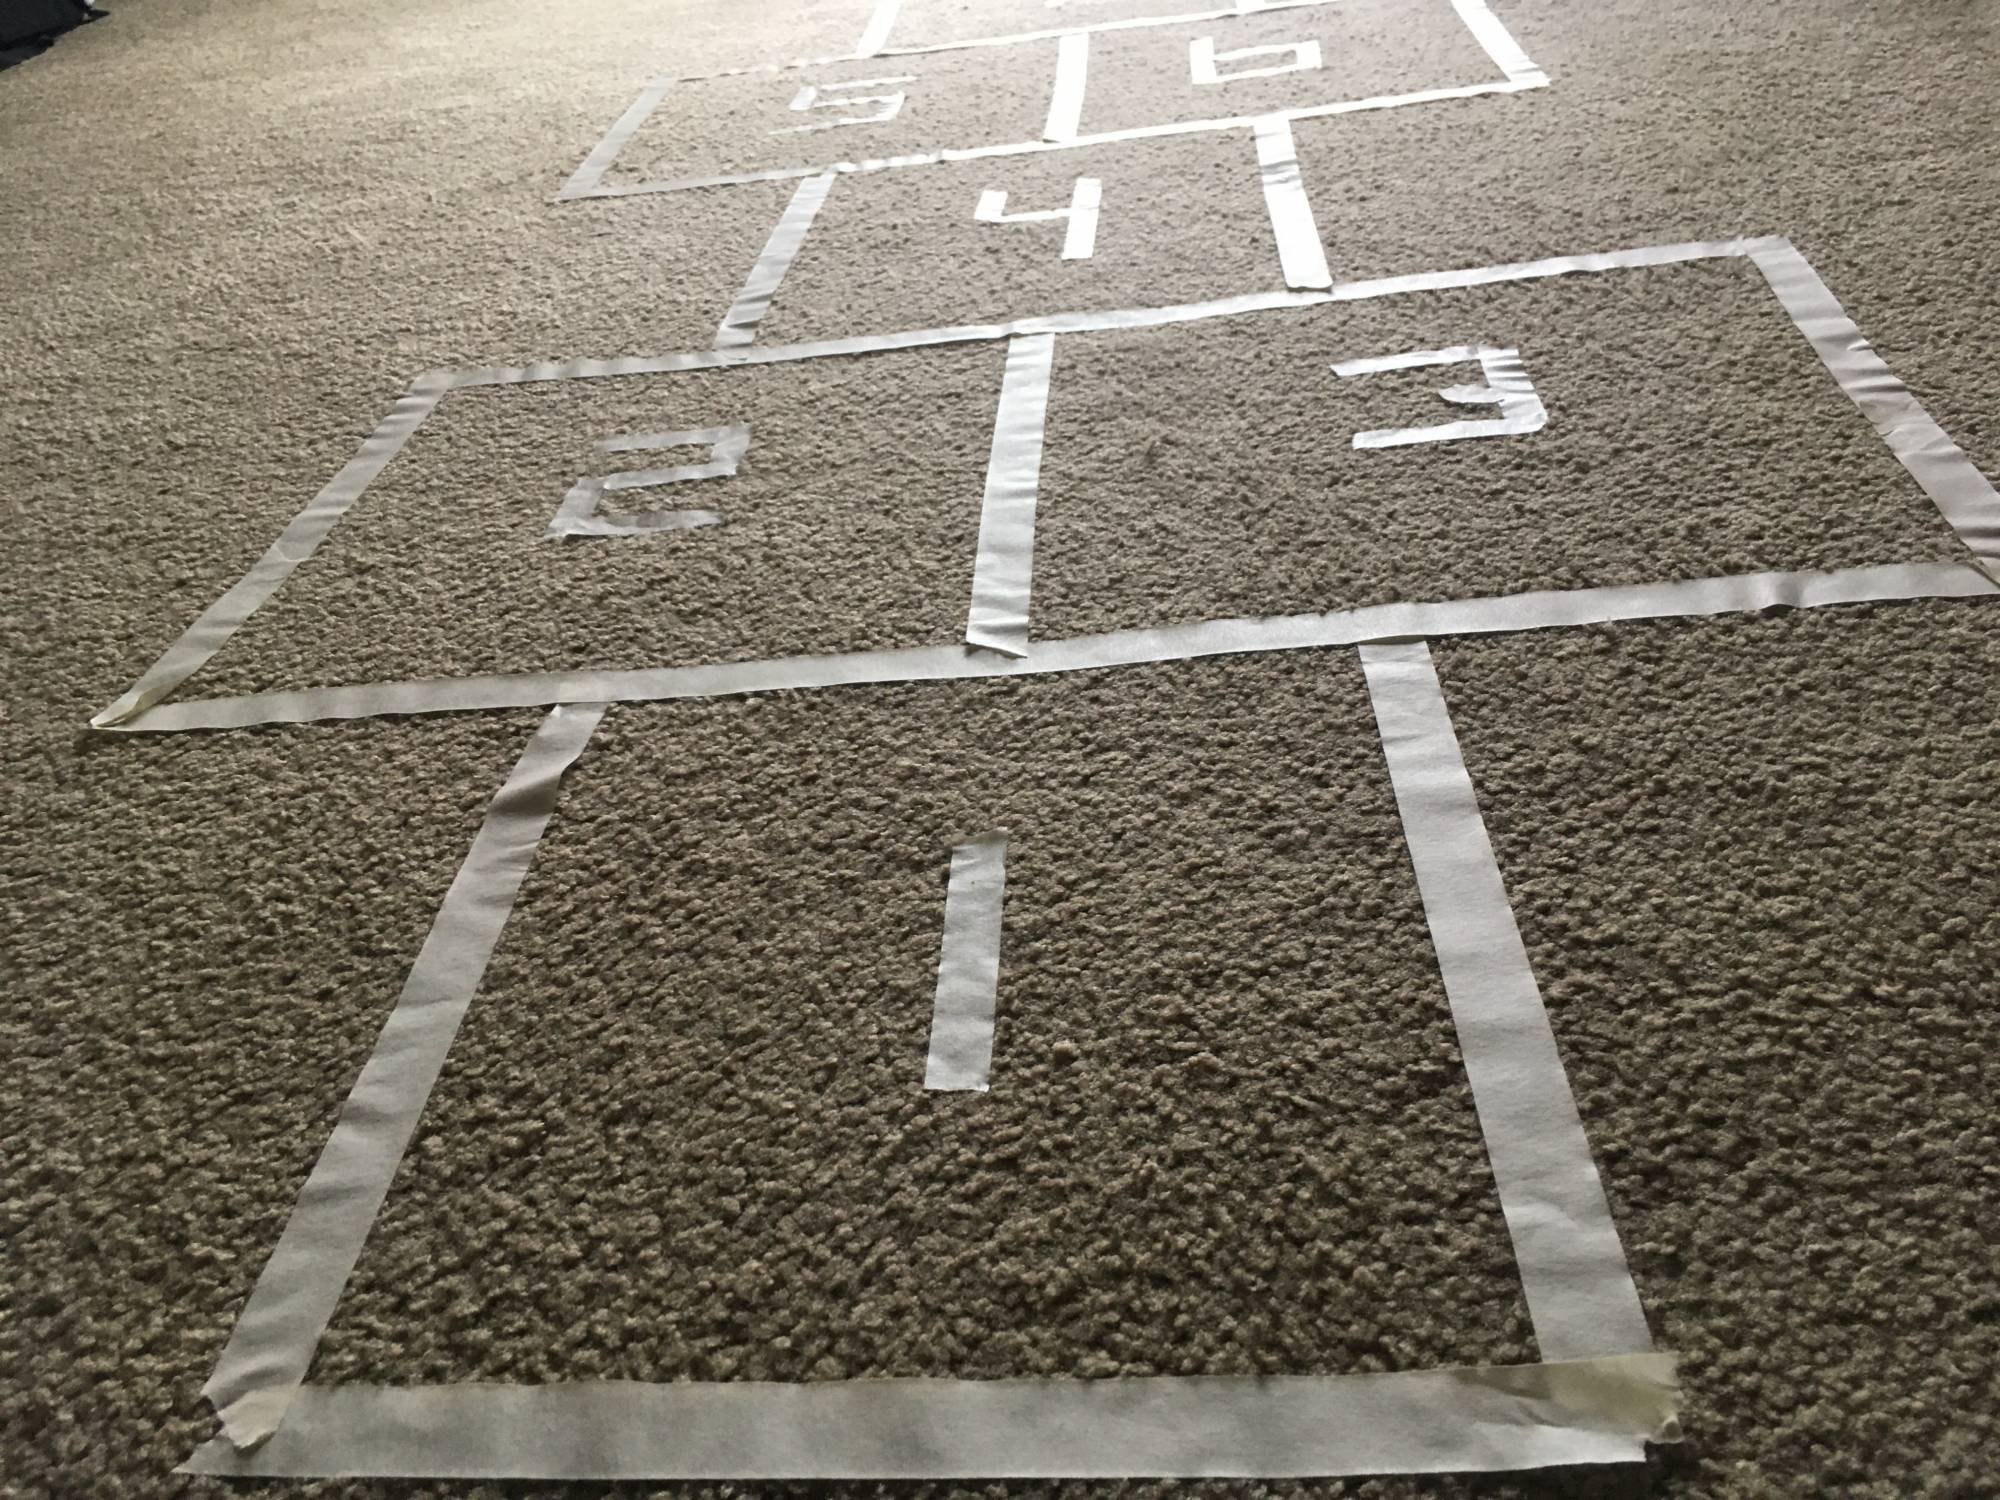 Hopscotch made from masking tape on carpet